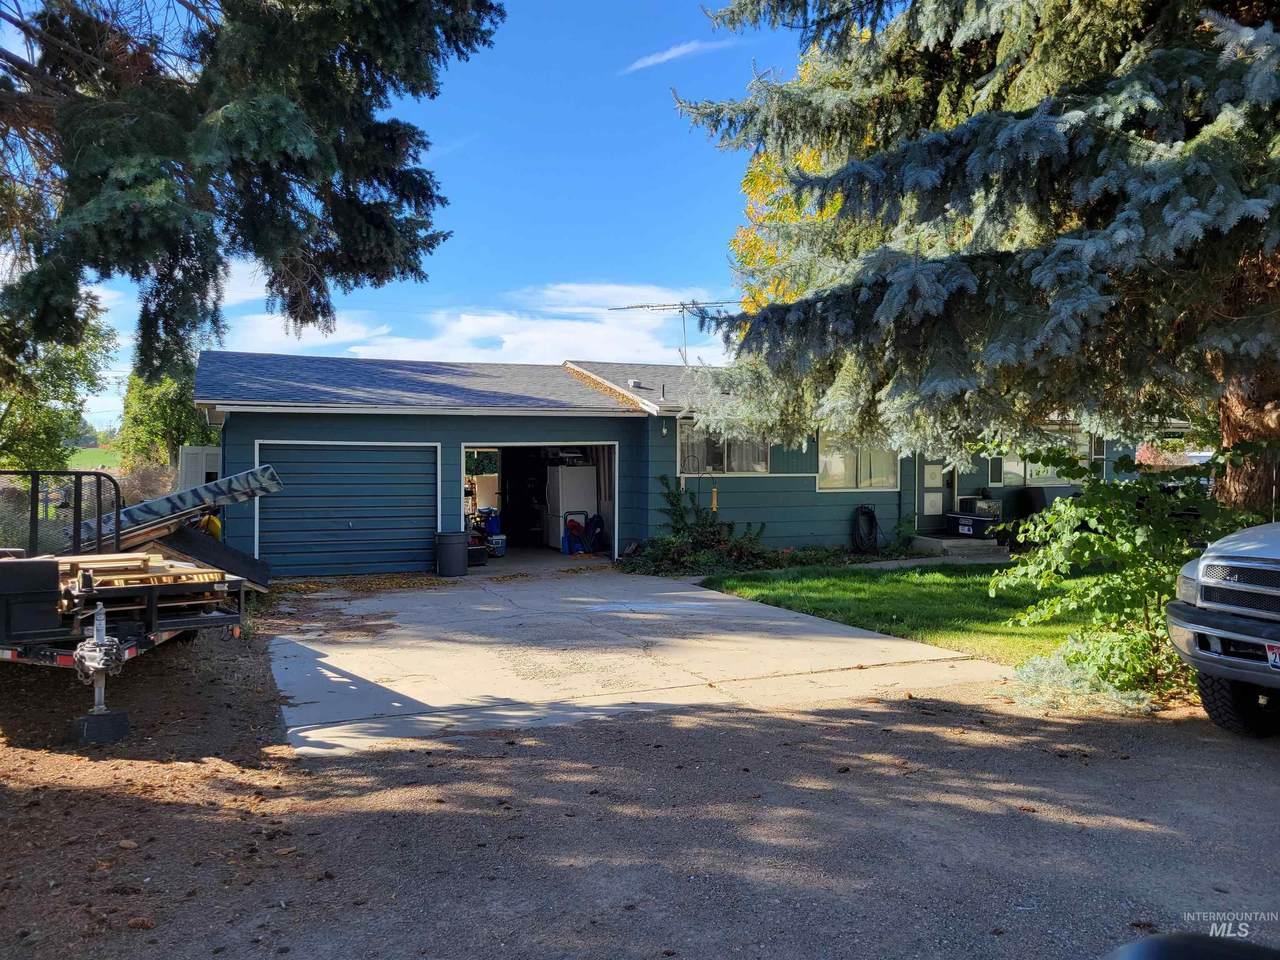 367 Orchard Dr - Photo 1